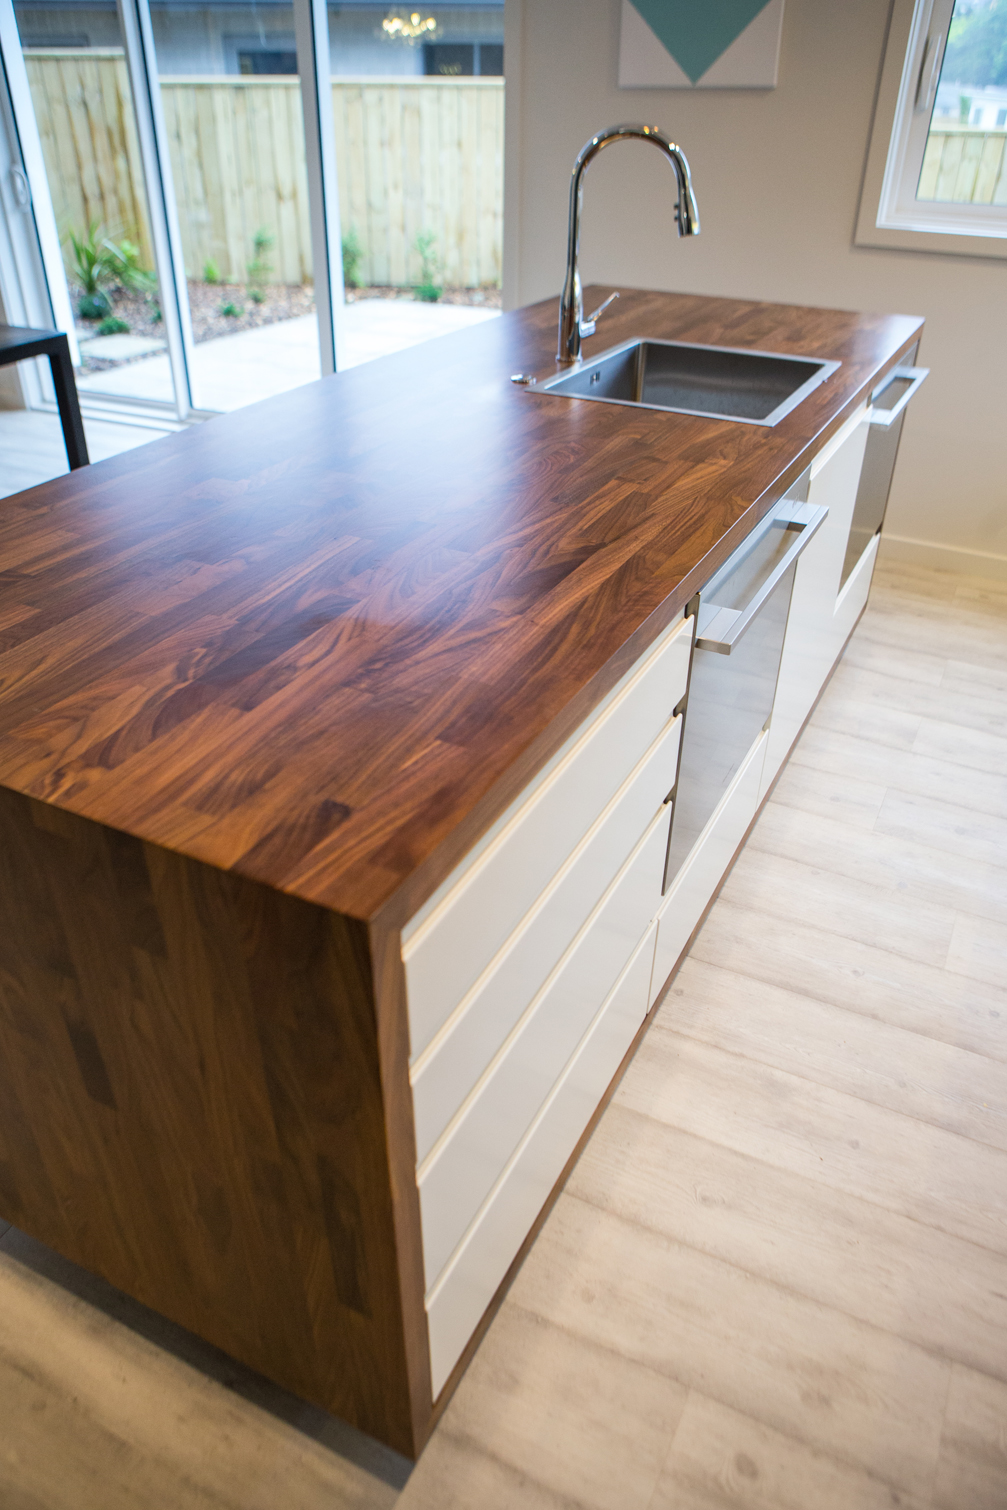 Timber Benchtops Blacklabel